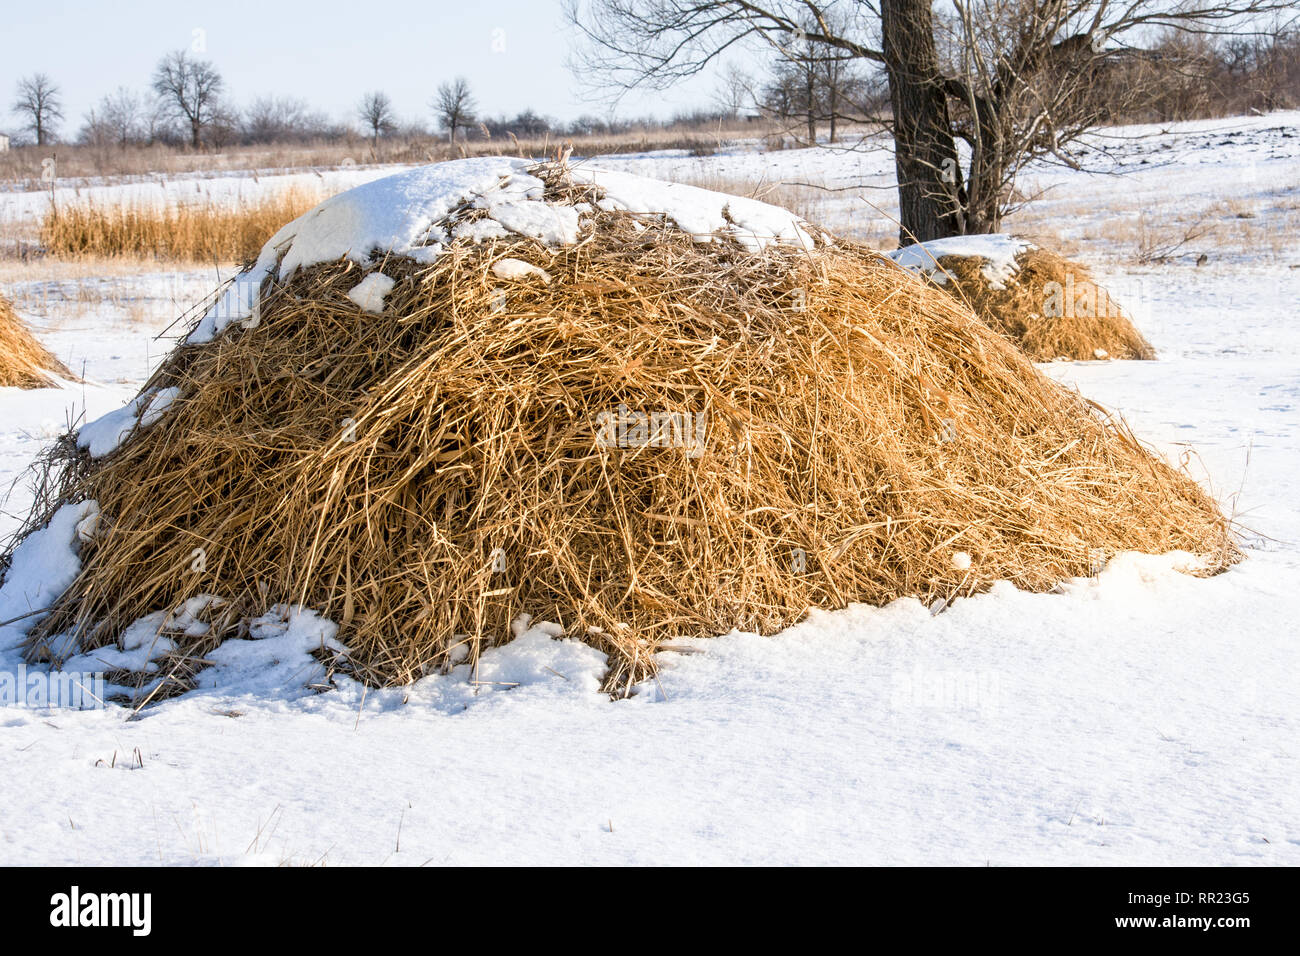 Haystacks in the snow at winter in the village - Stock Image